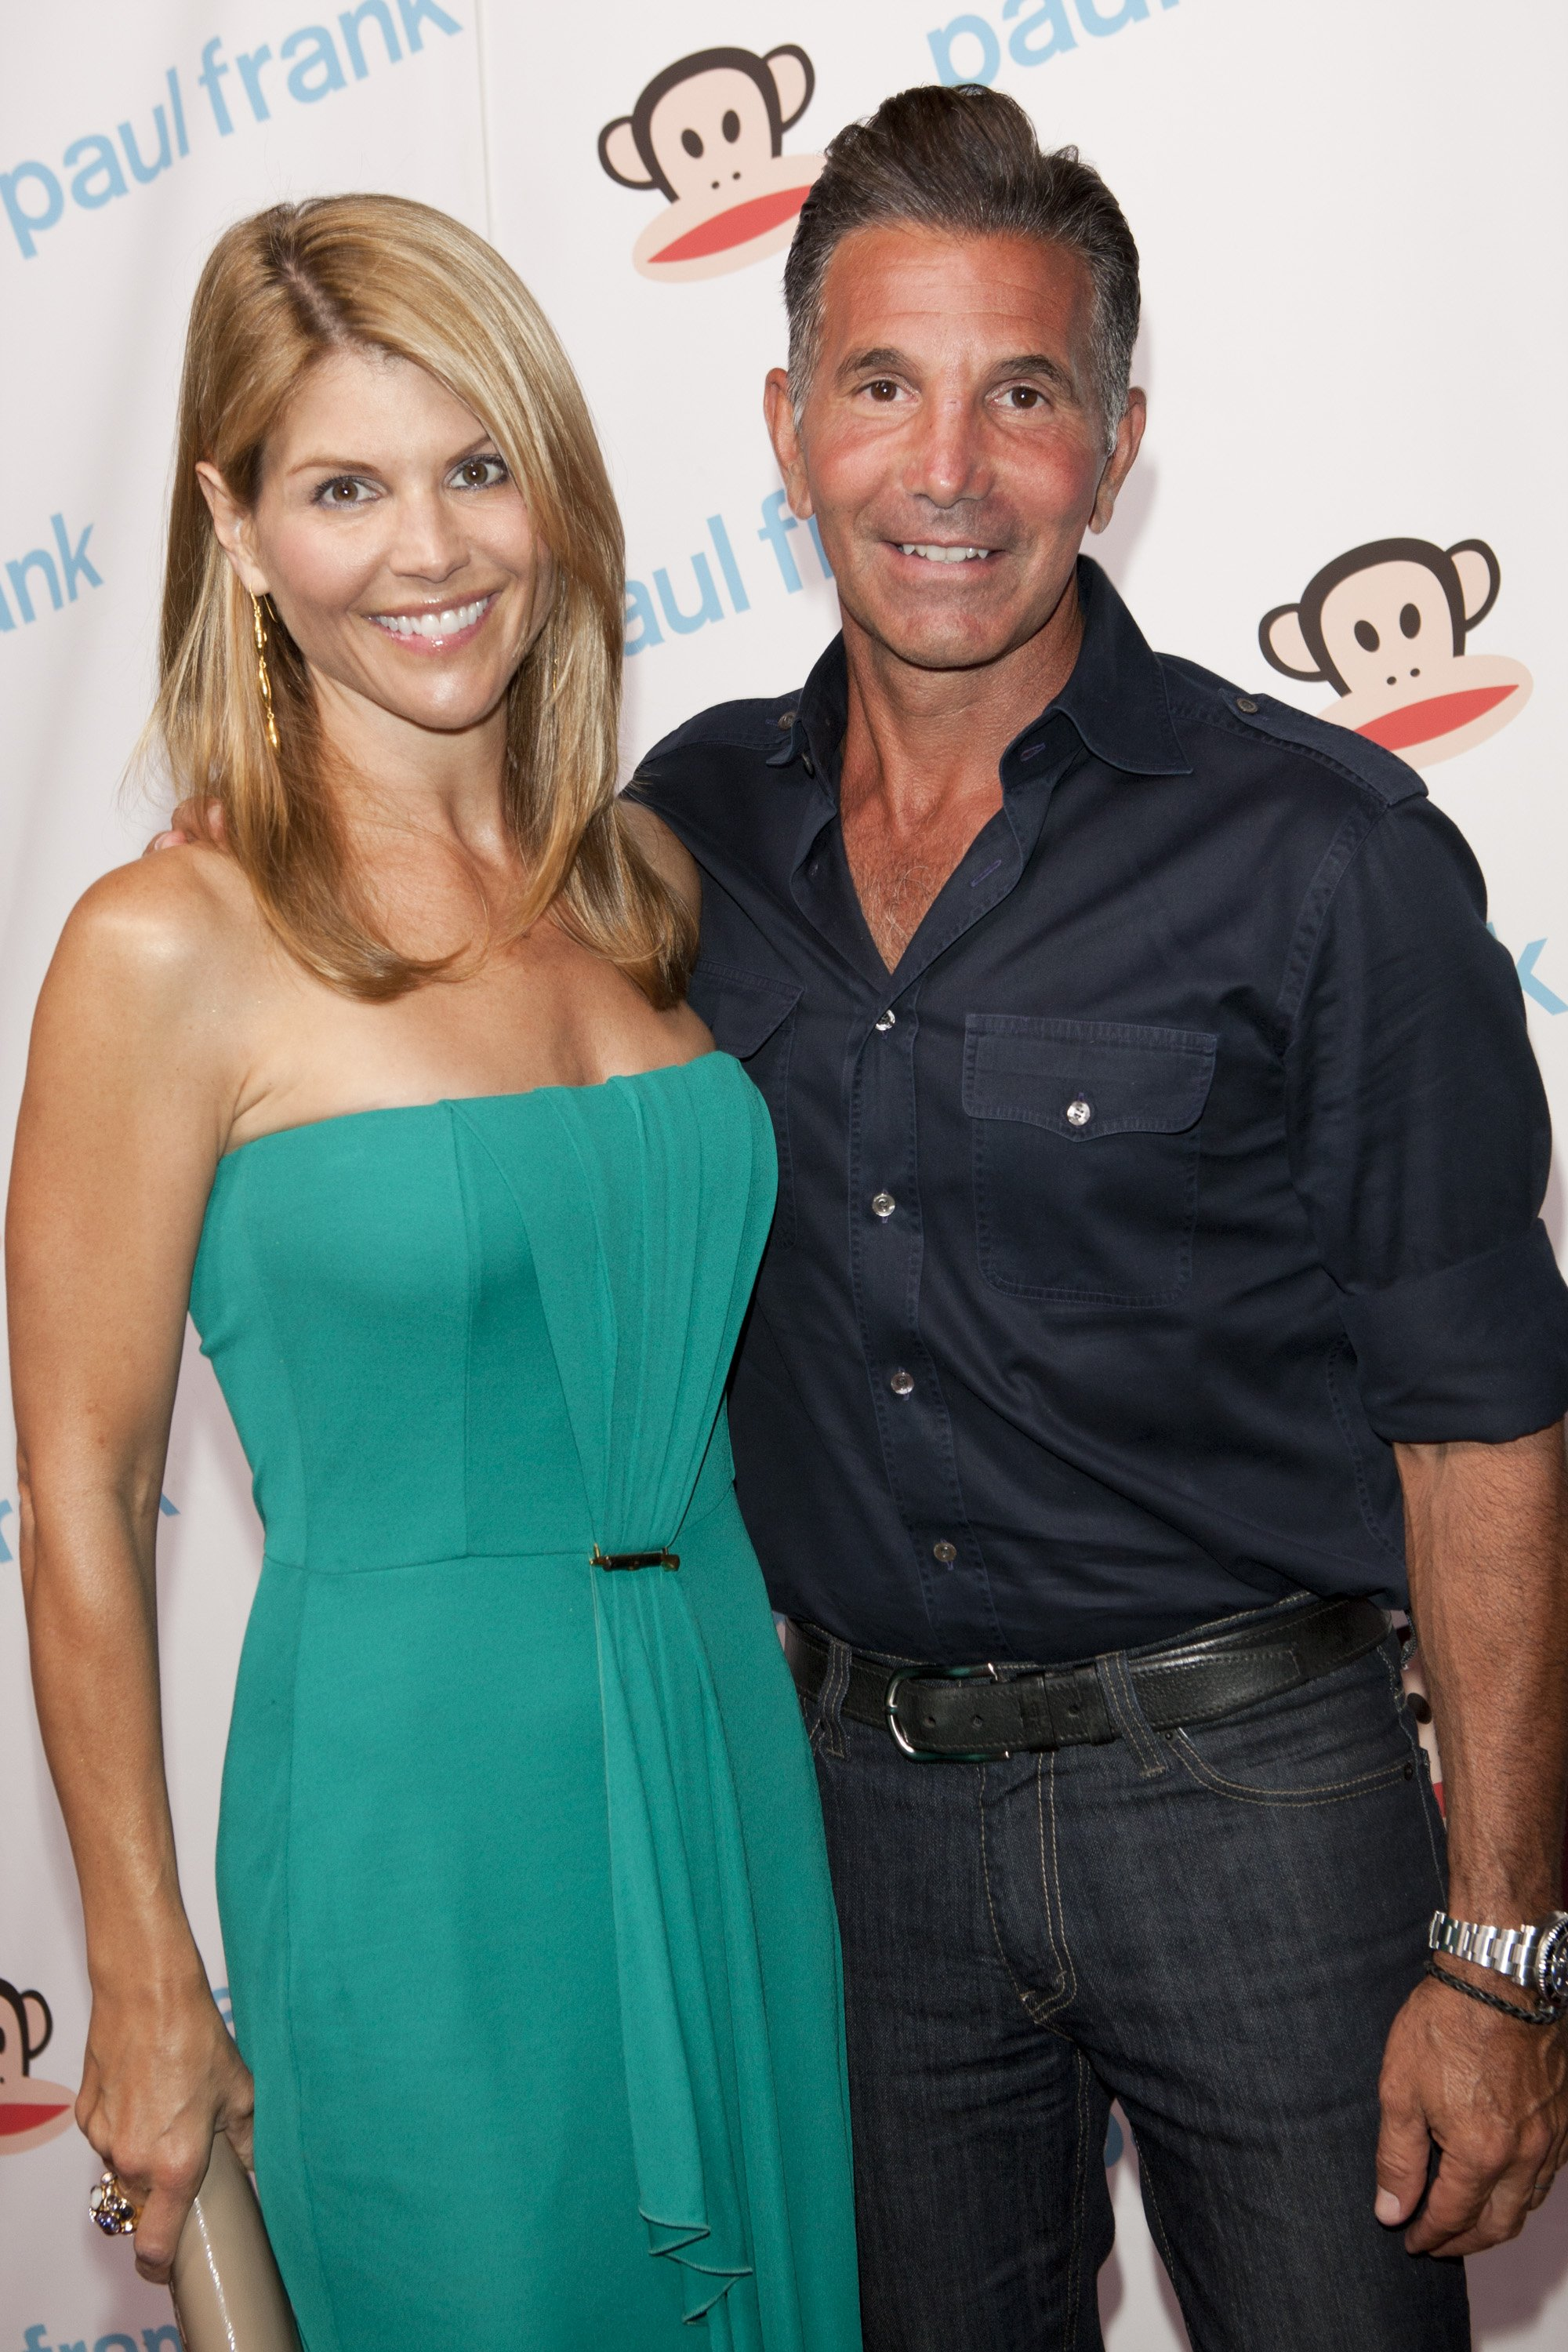 Lori Loughlin and husband Mossimo Giannulli attending Paul Frank's celebration of Fashion's Night Out at ADBD Gallery | Photo: Getty Images